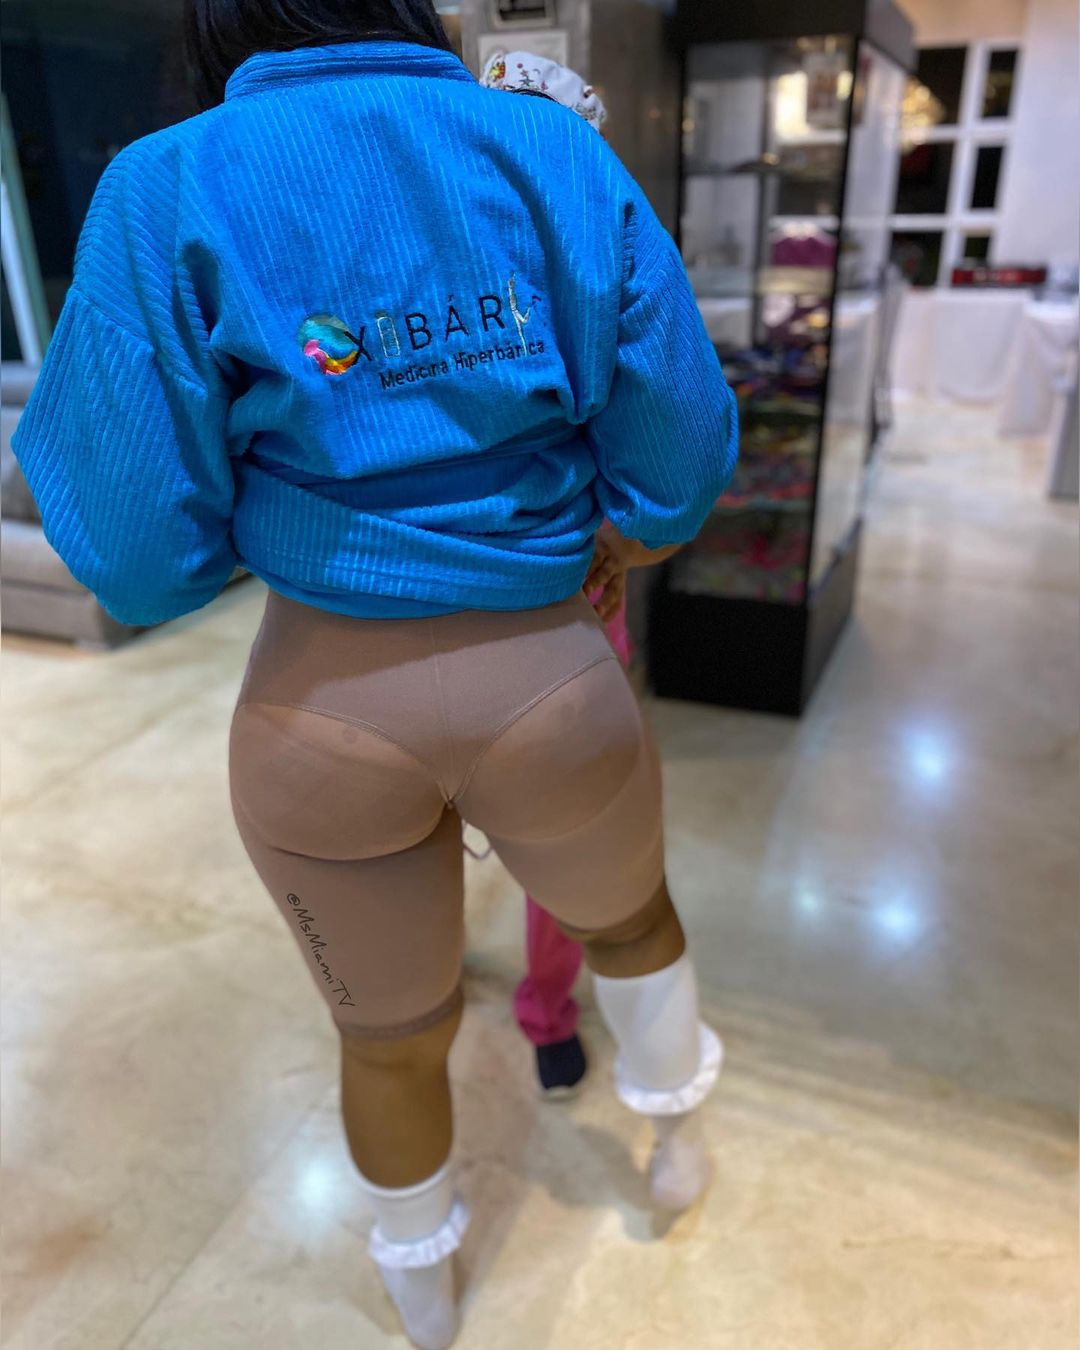 Courtney Barnes, Lady who did Butt Surgery six times shares Experience